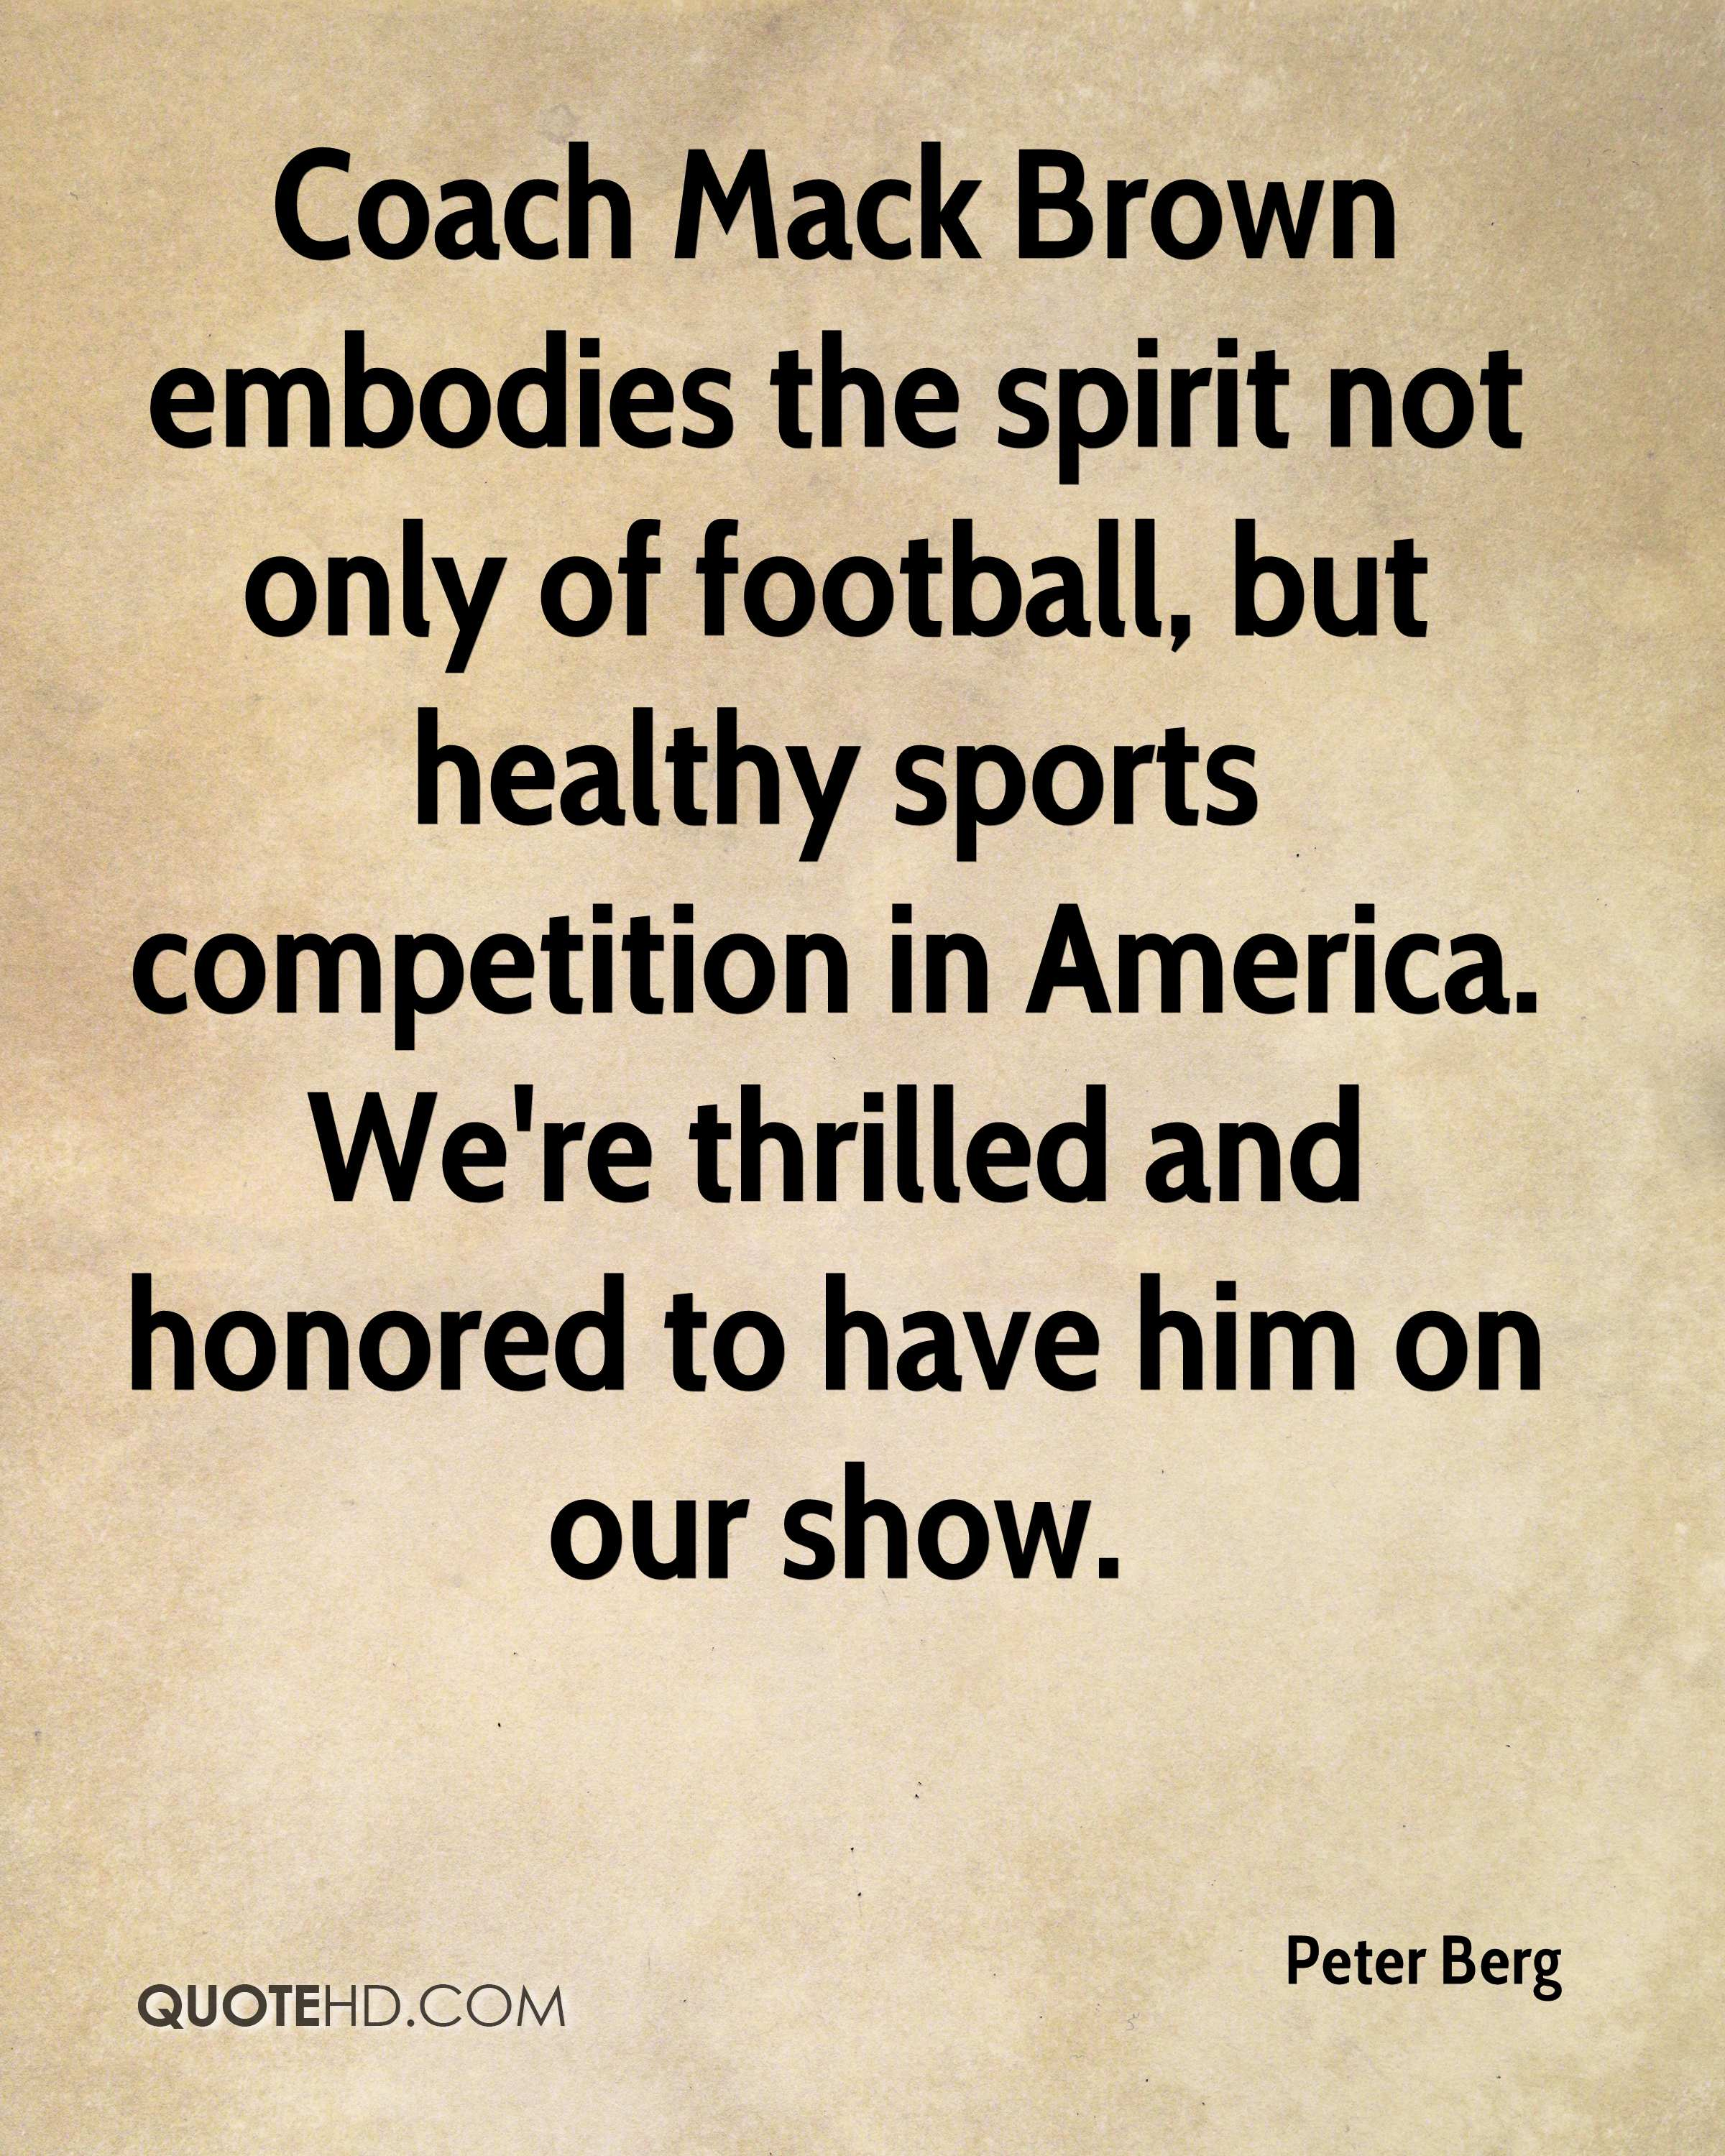 Coach Mack Brown embodies the spirit not only of football, but healthy sports competition in America. We're thrilled and honored to have him on our show.